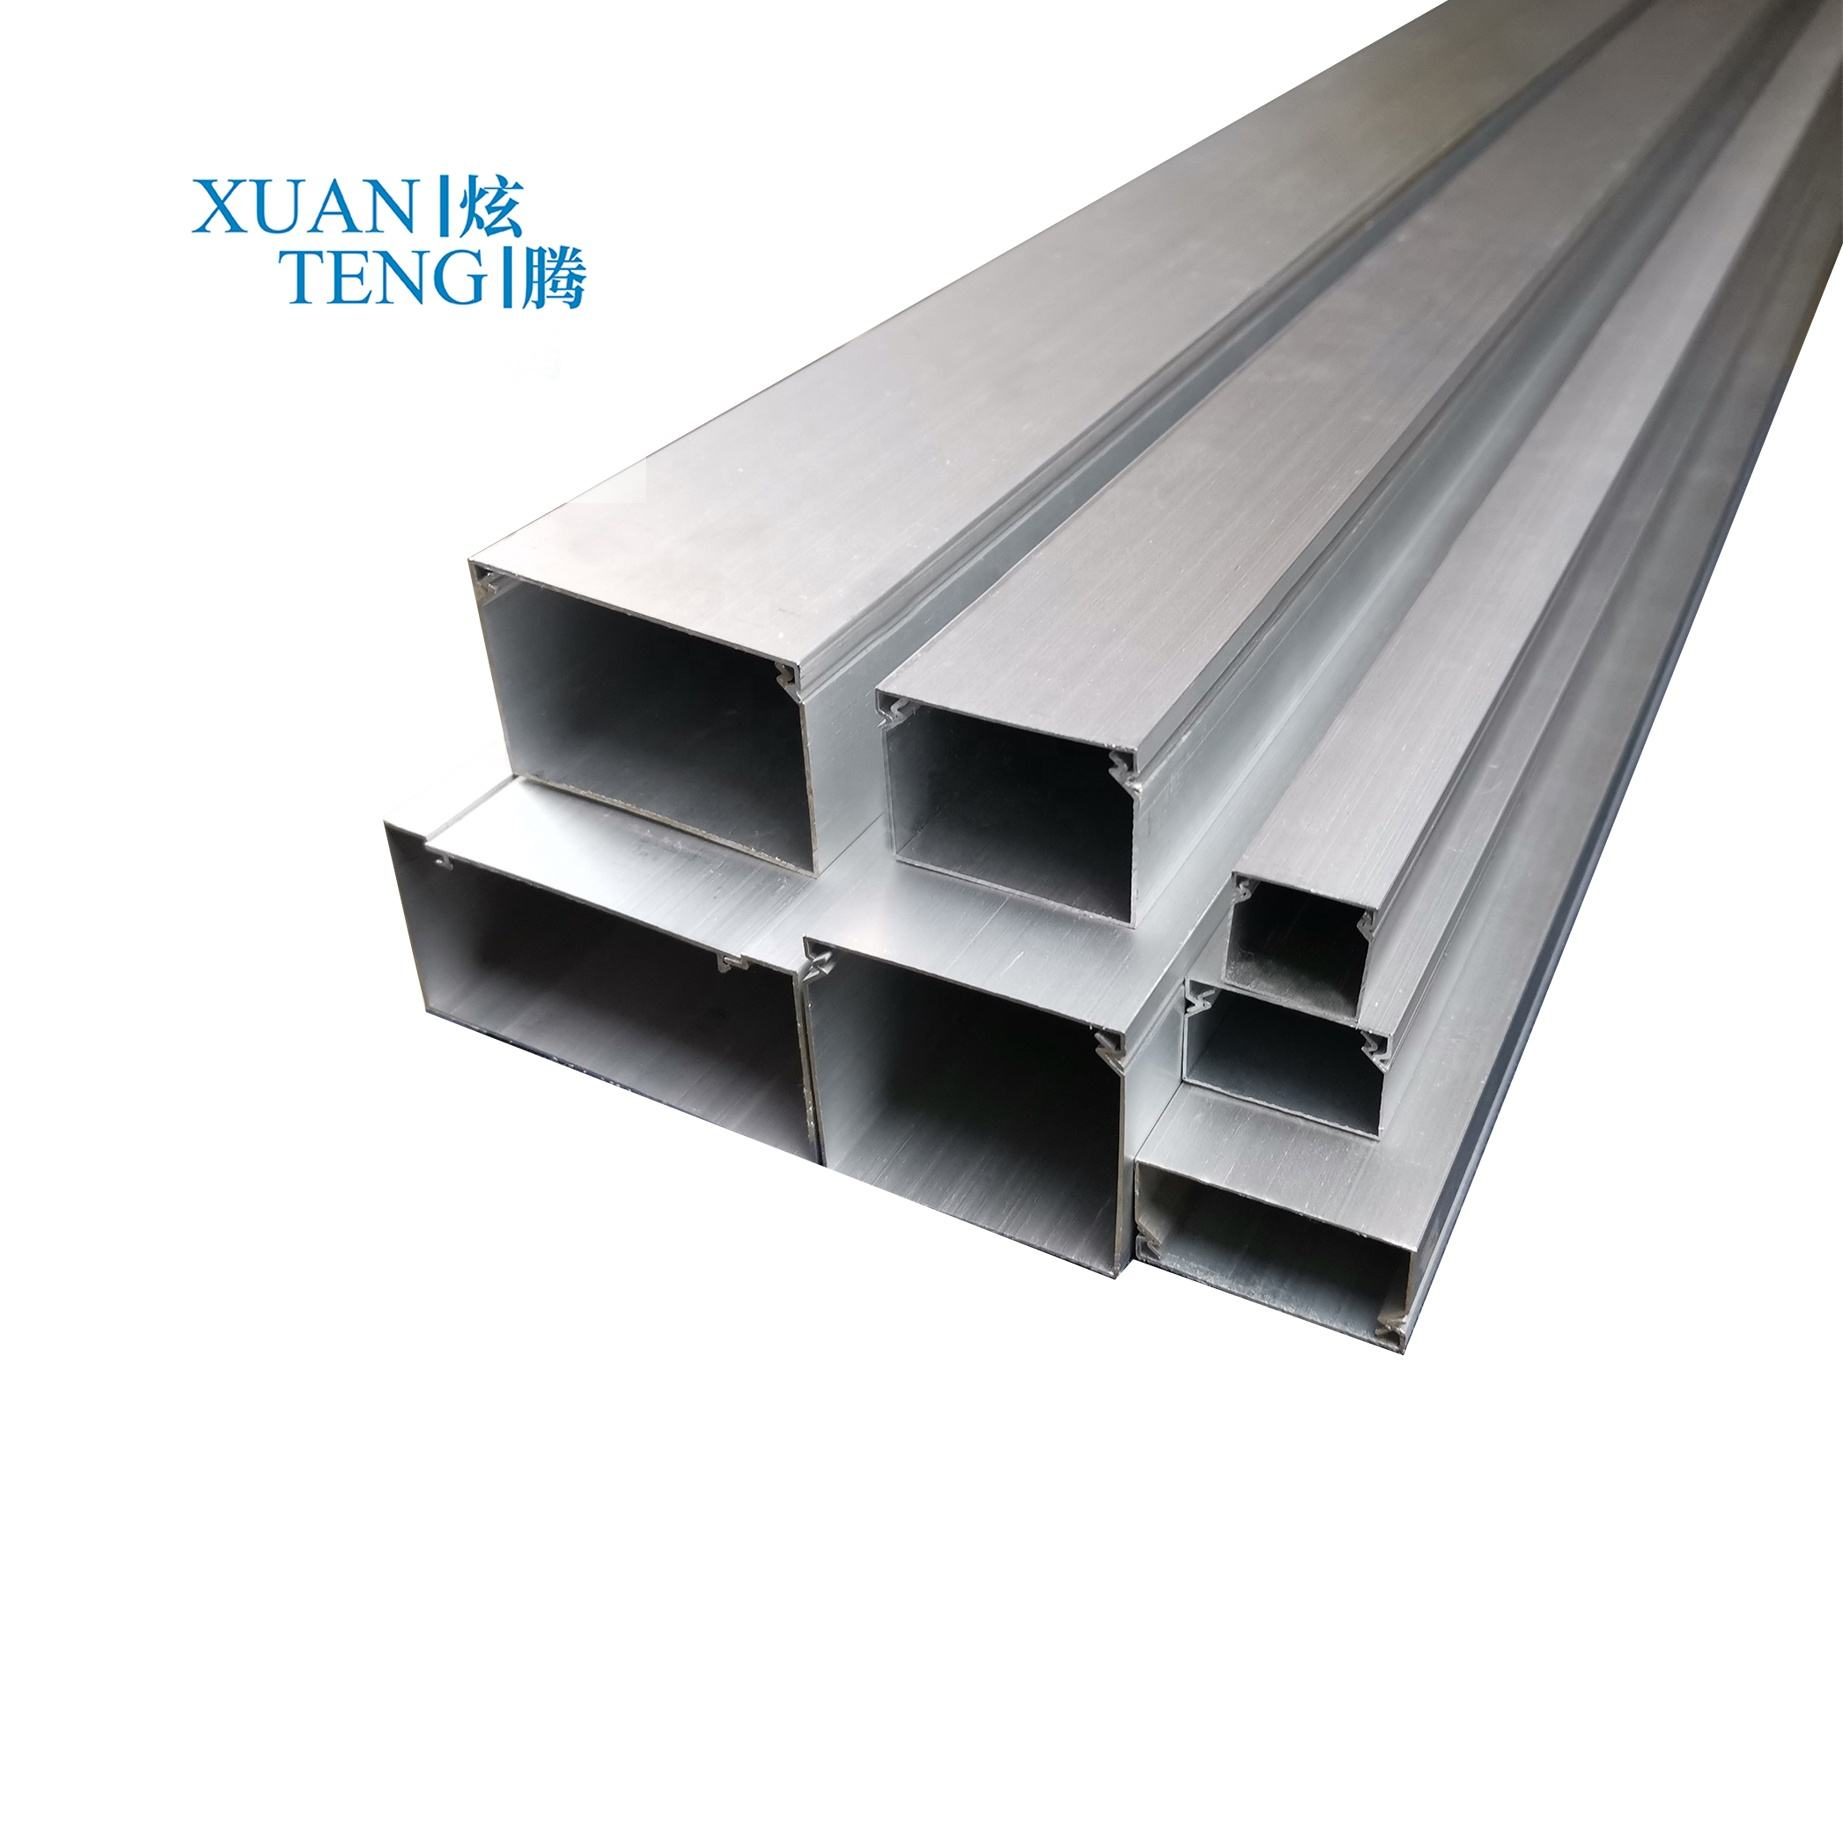 China Manufacturer Anodized Aluminium Square Tube With Good Quality